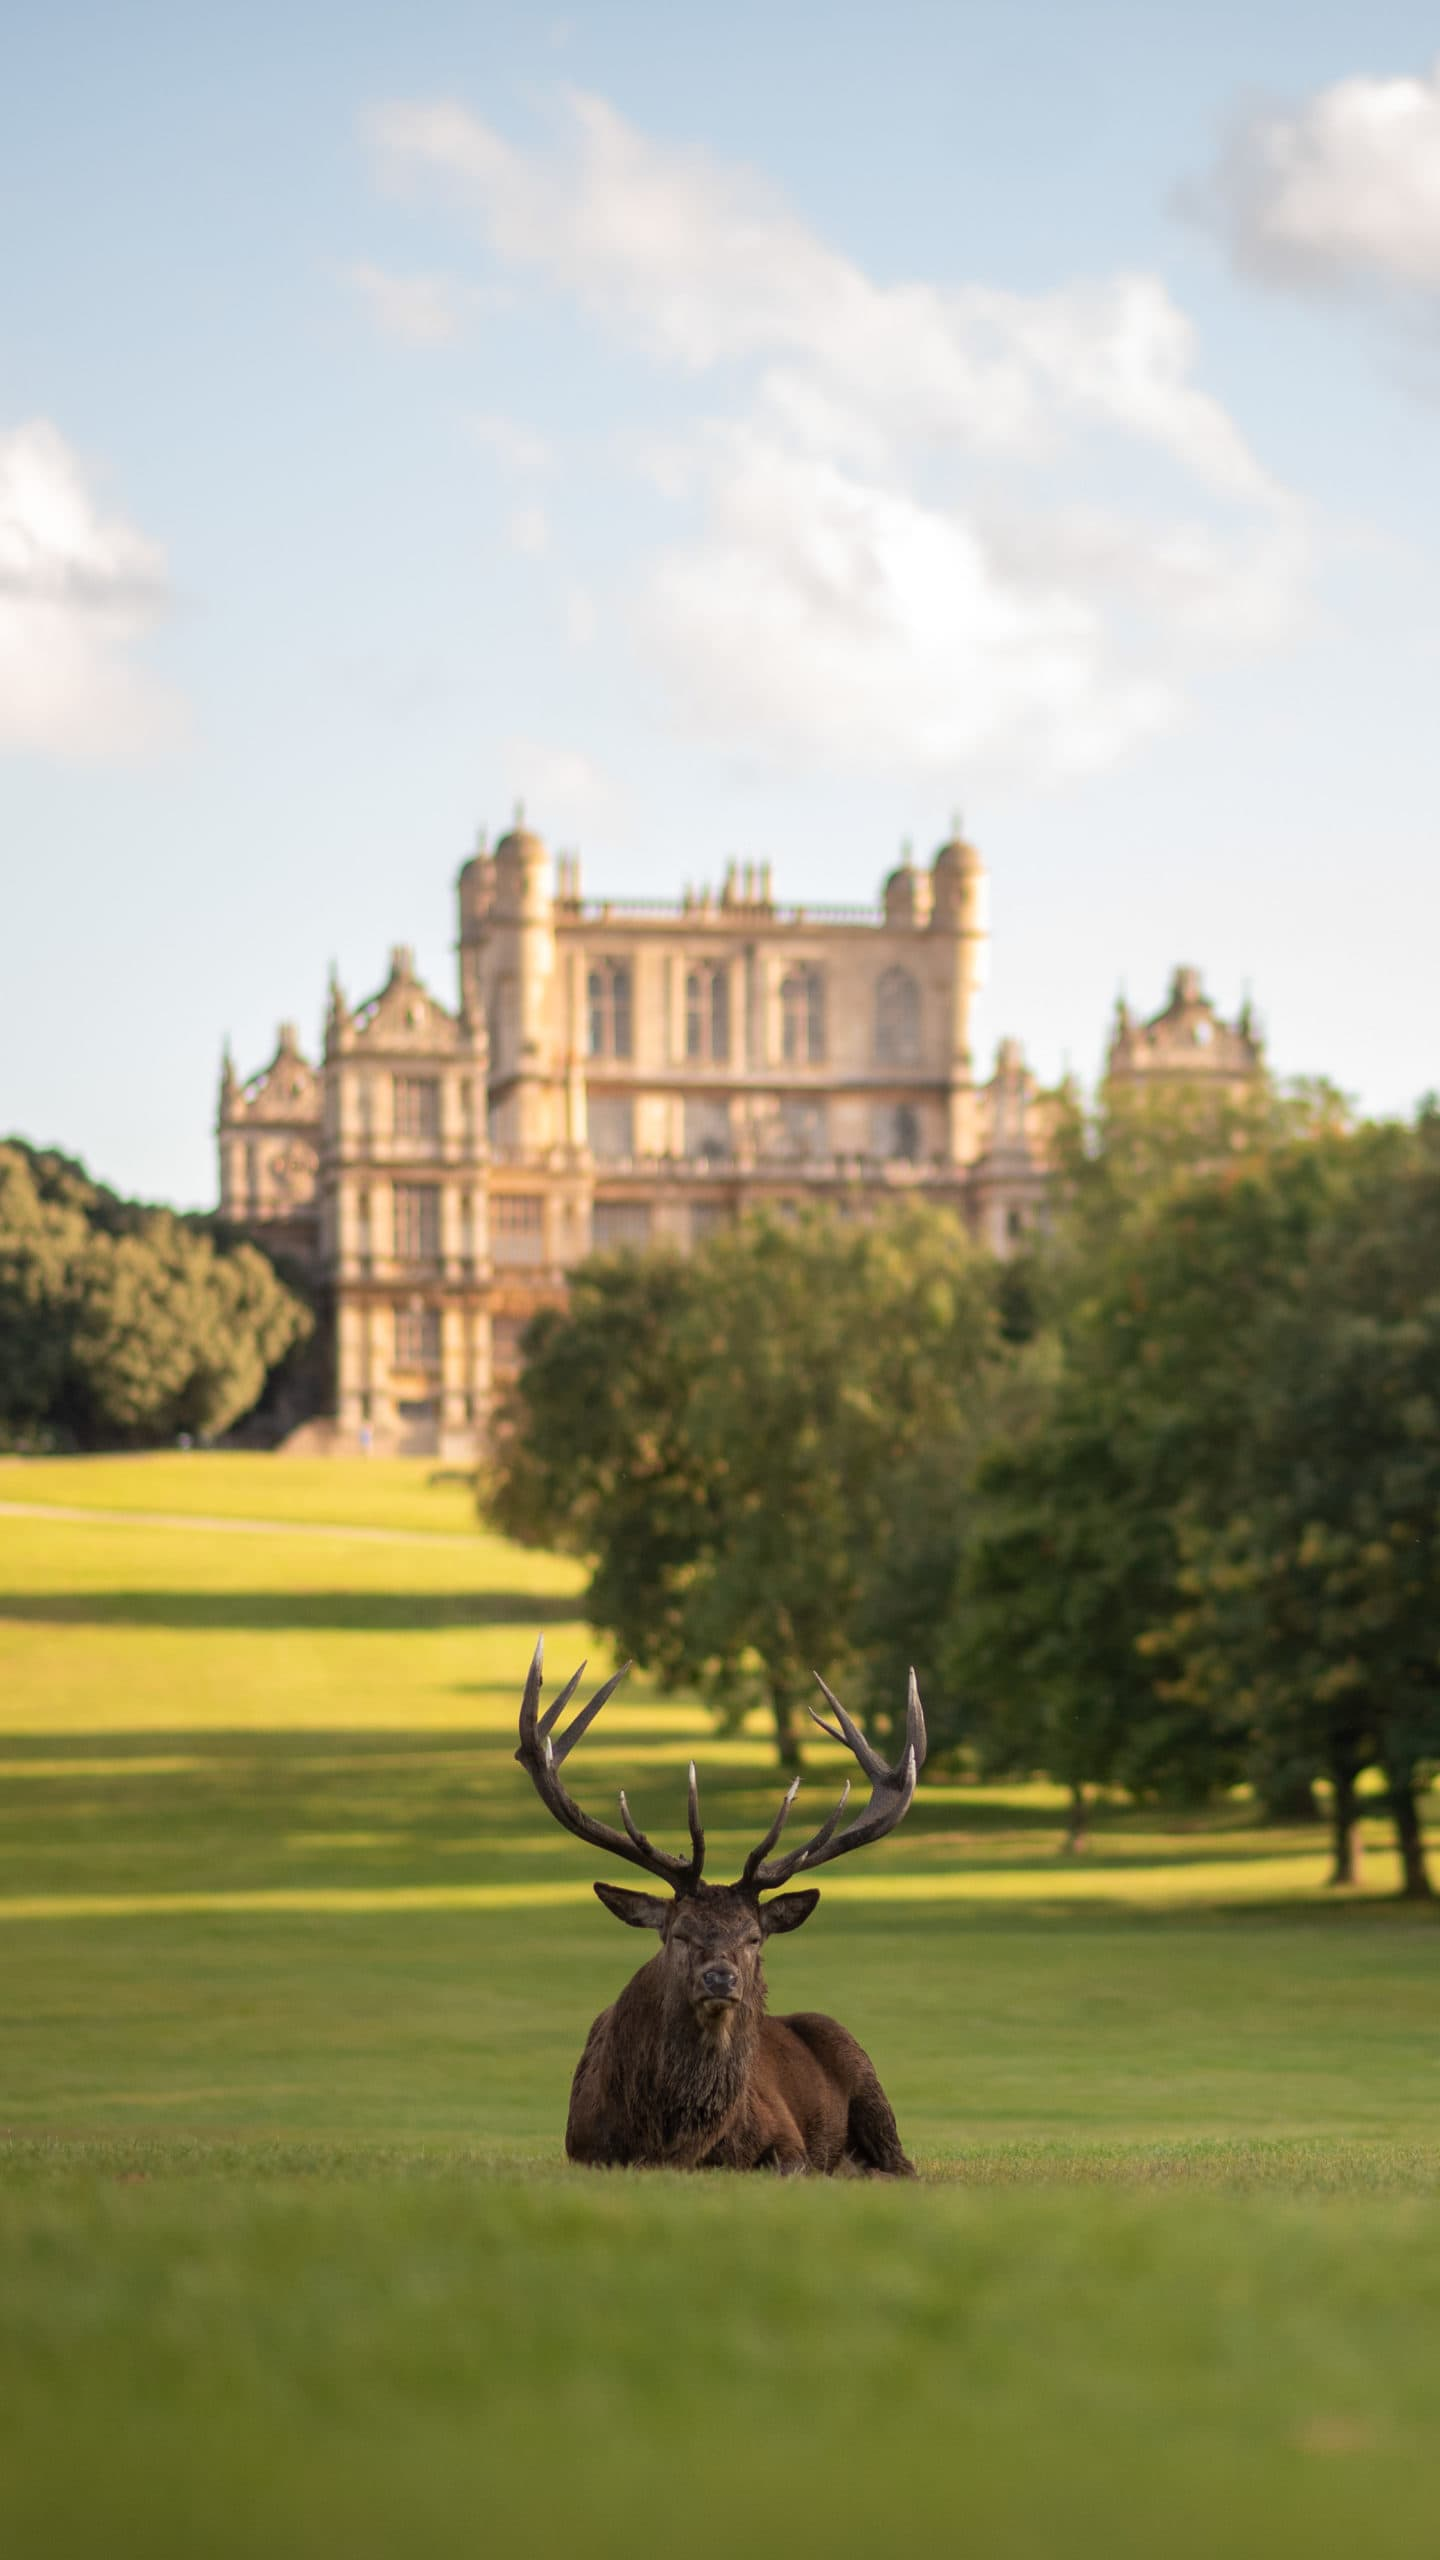 A deer resting outside Wollaton Hall